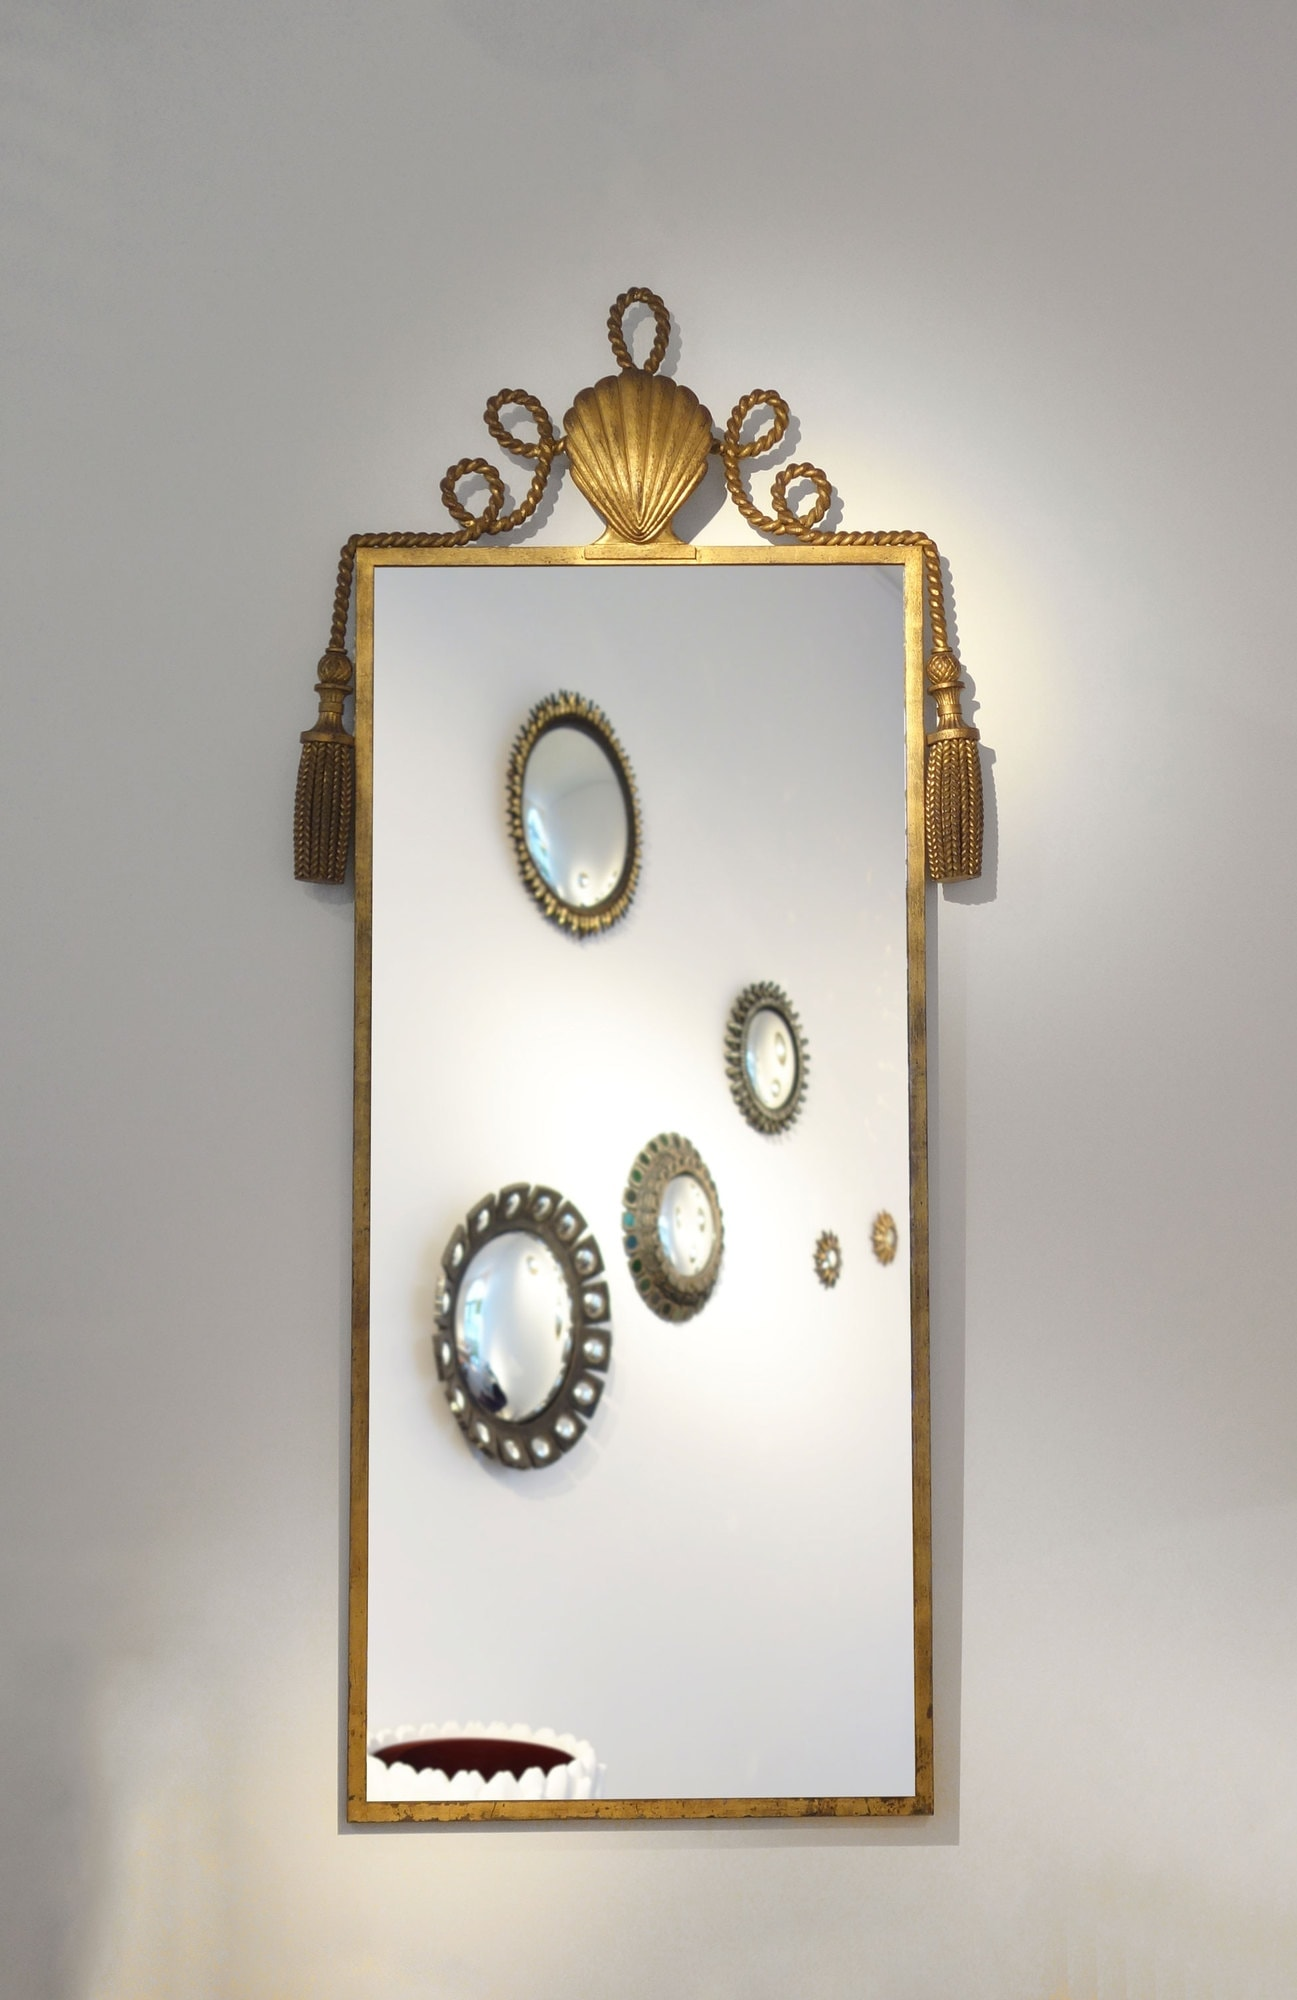 Gilbert Poillerat, Important and rare mirror (sold), vue 01